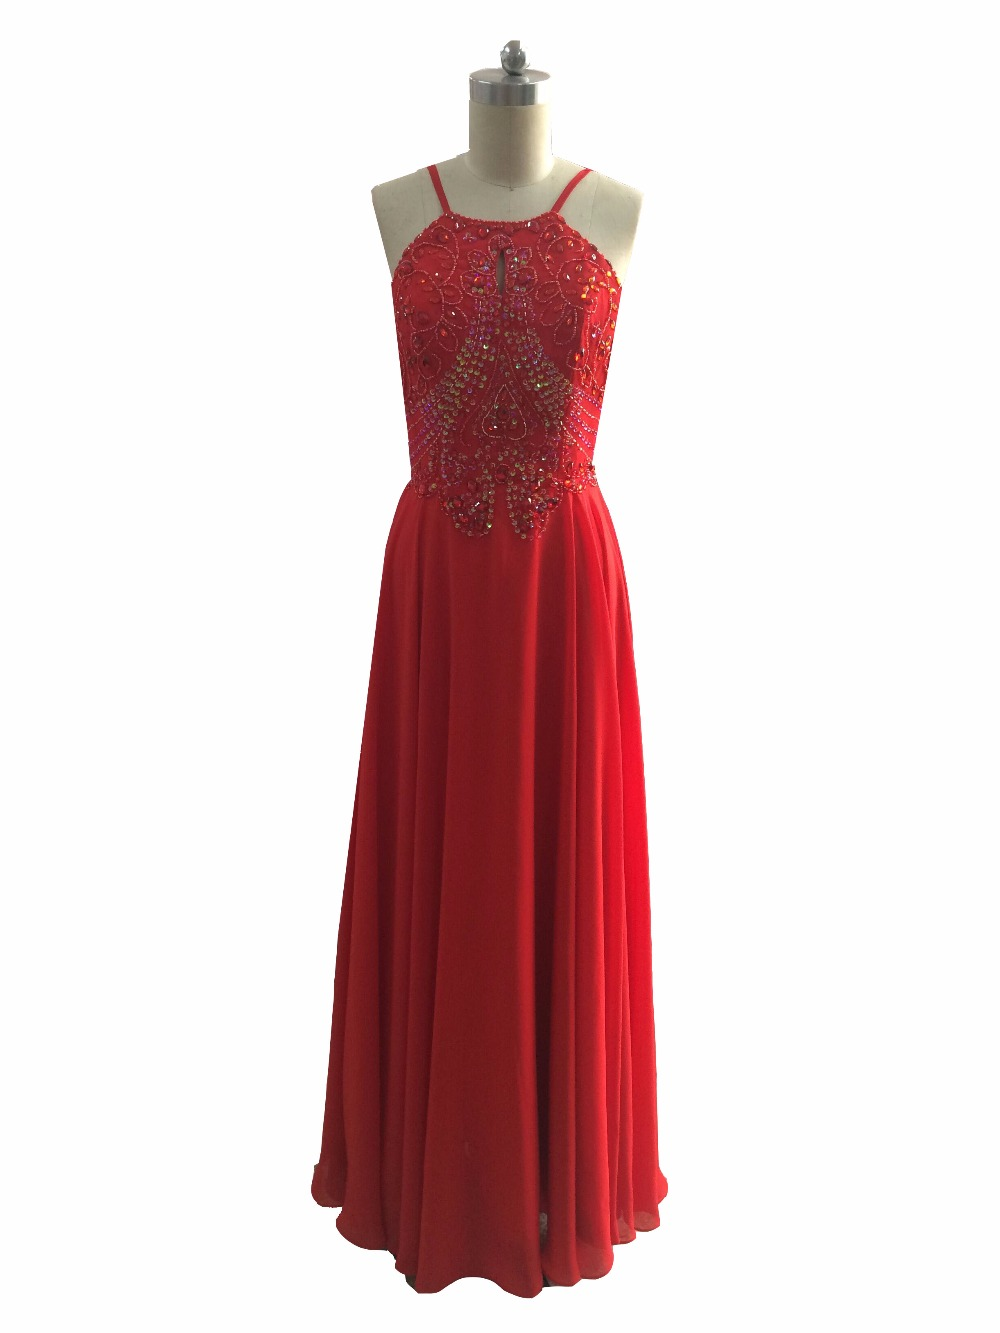 New <font><b>Sexy</b></font> Red Backless <font><b>Evening</b></font> <font><b>Dresses</b></font> Chiffon Long Beaded and Crystals <font><b>Evening</b></font> Party <font><b>Dresses</b></font> <font><b>2018</b></font> image